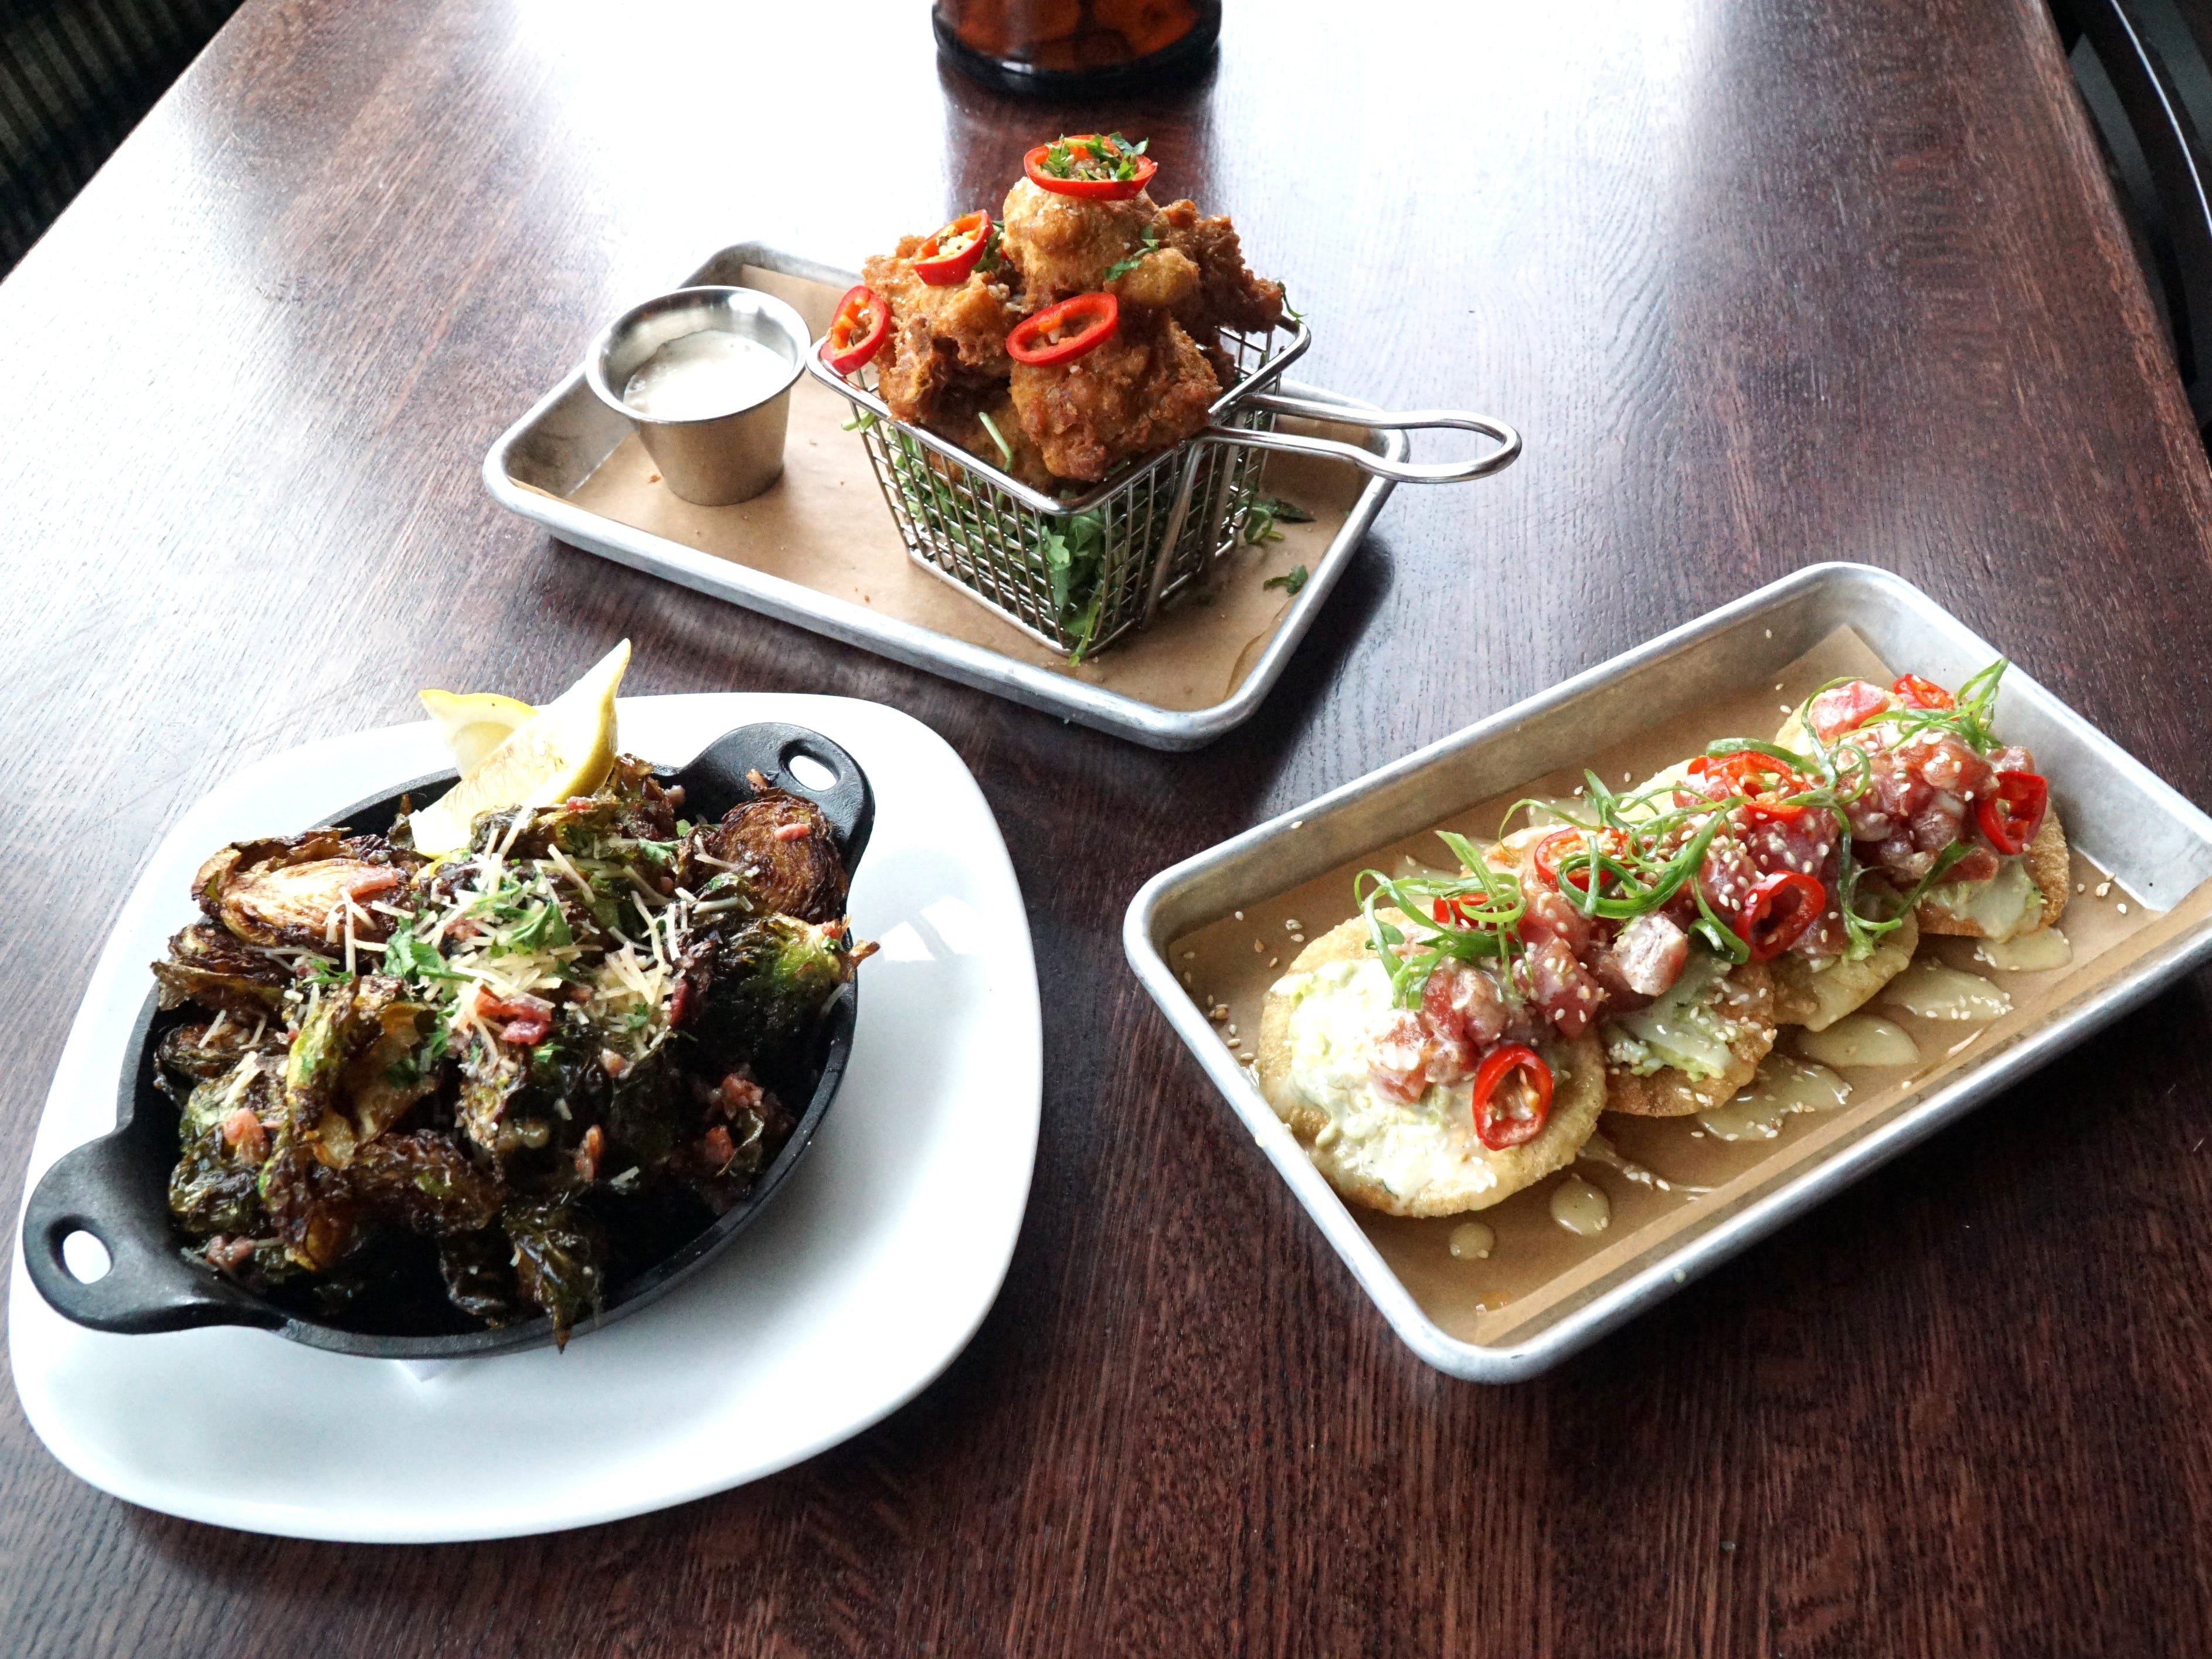 New Granite City menu items include, from left: crispy brussel sprouts, street corn fritters, and poke tuna tostadas.